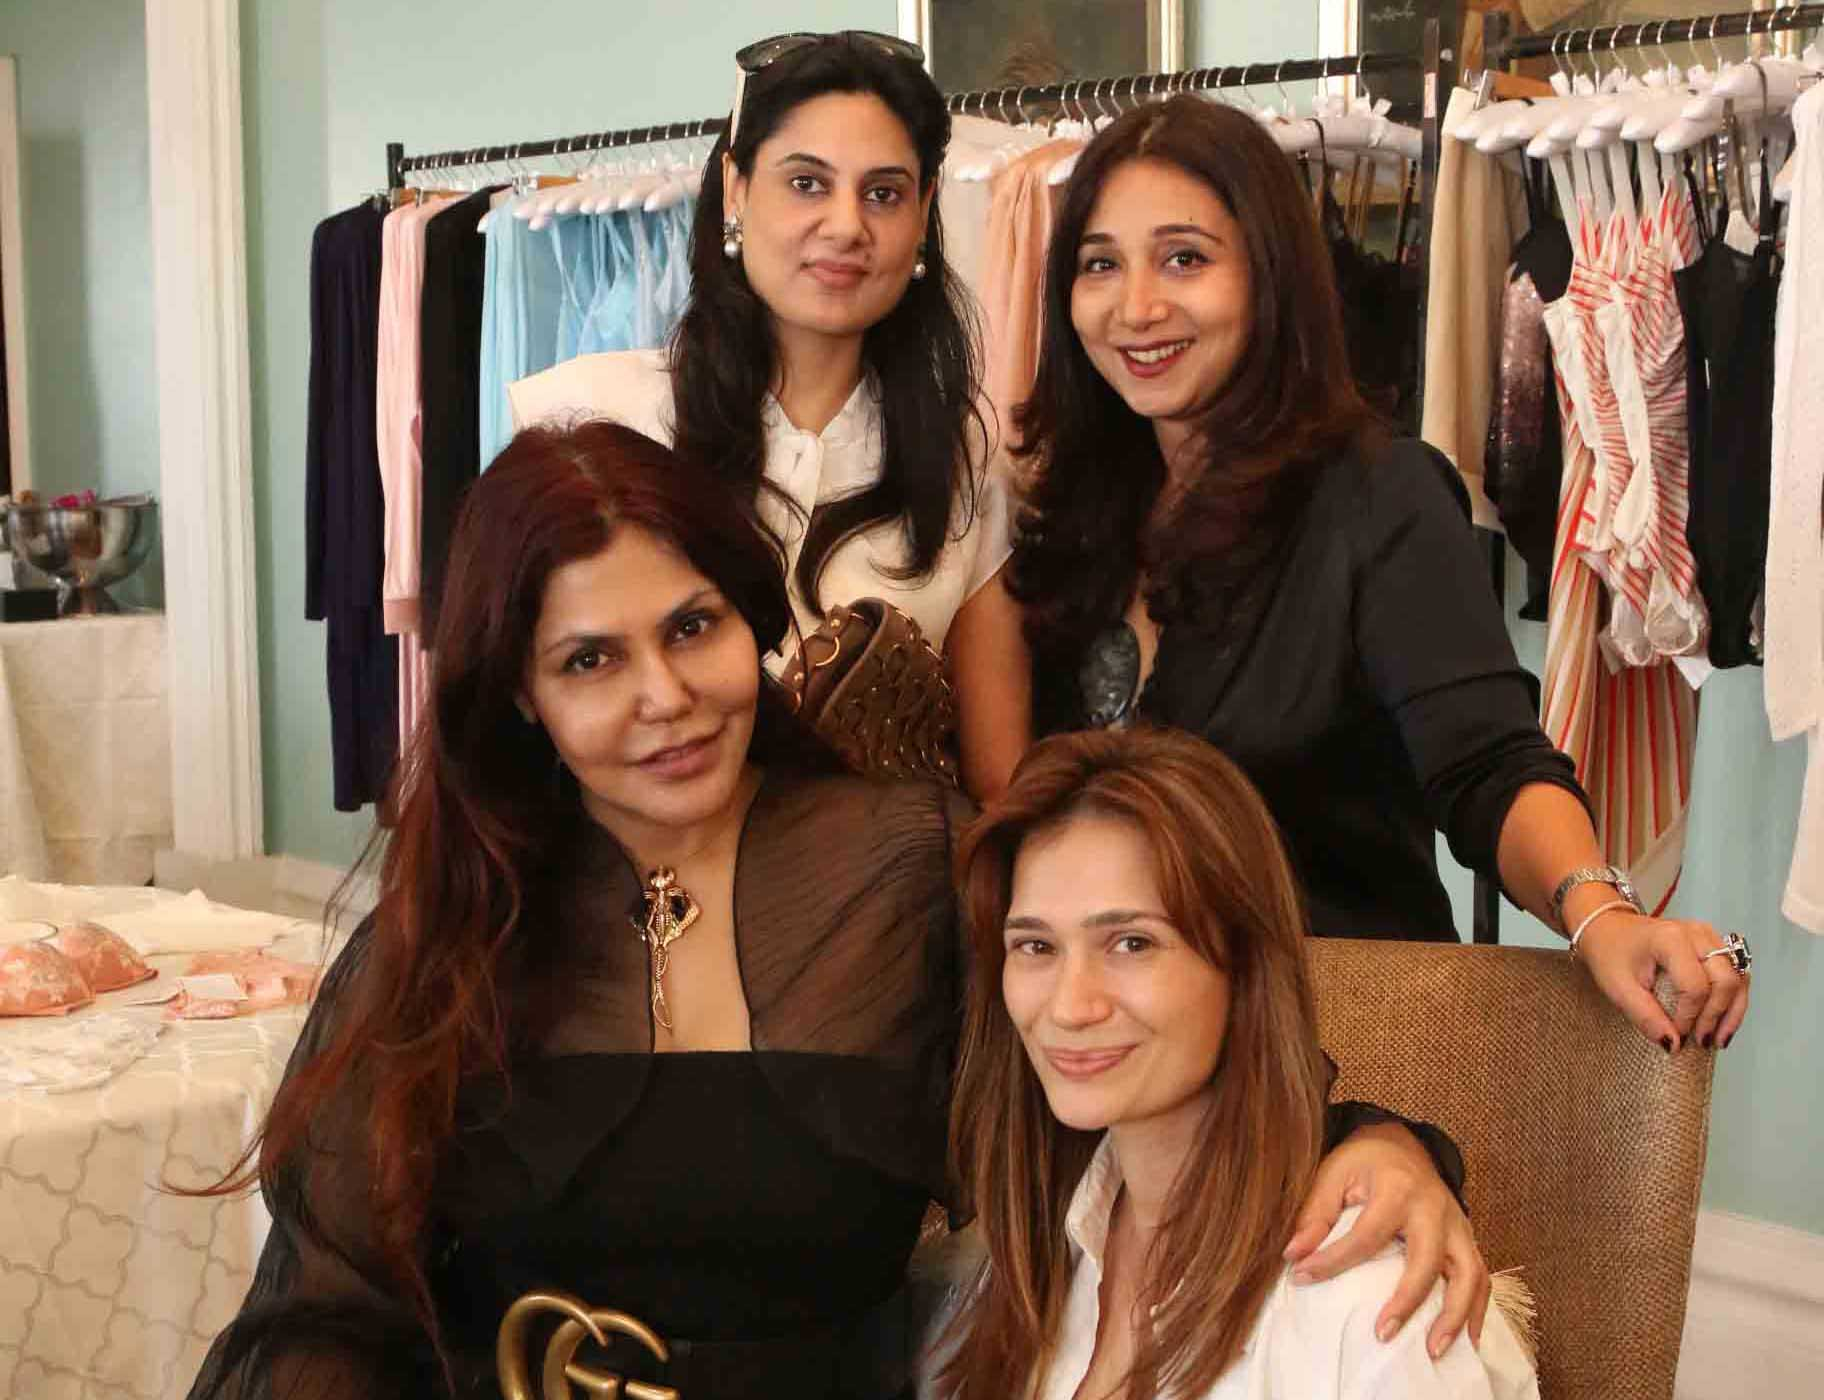 Aparna Badlani, Events, Featured, La Perla, Lingerie, Mumbai, Natacha Chib, Payal Singhal, Pomp, Sapna Shehrawat, Shaheen Abbas, The Taj Mahal Palace